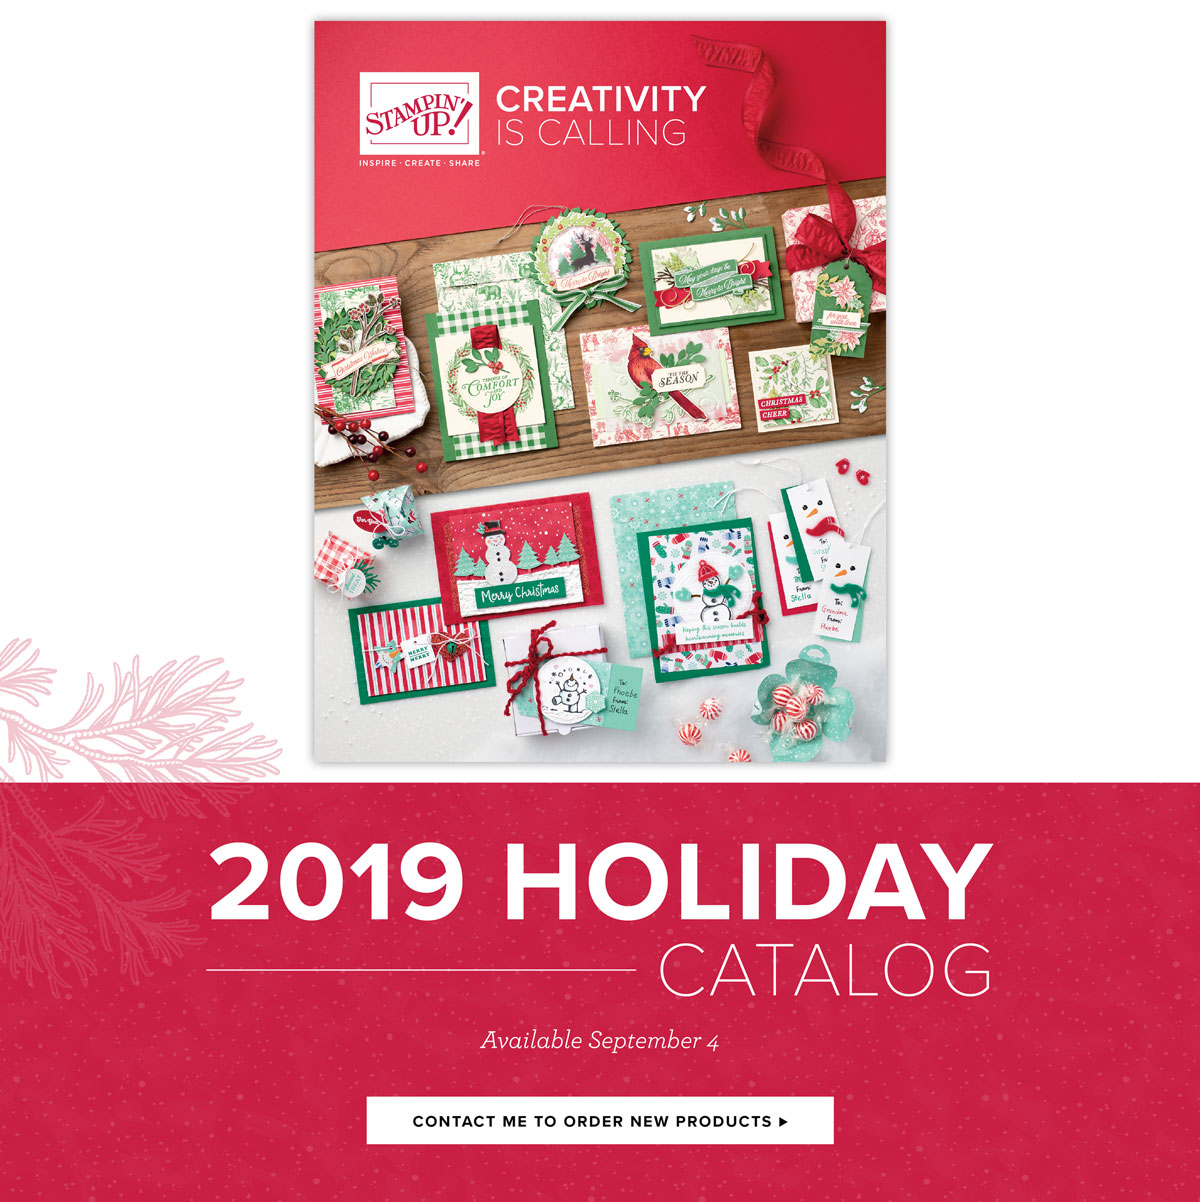 HOLIDAY CATALOG 2019